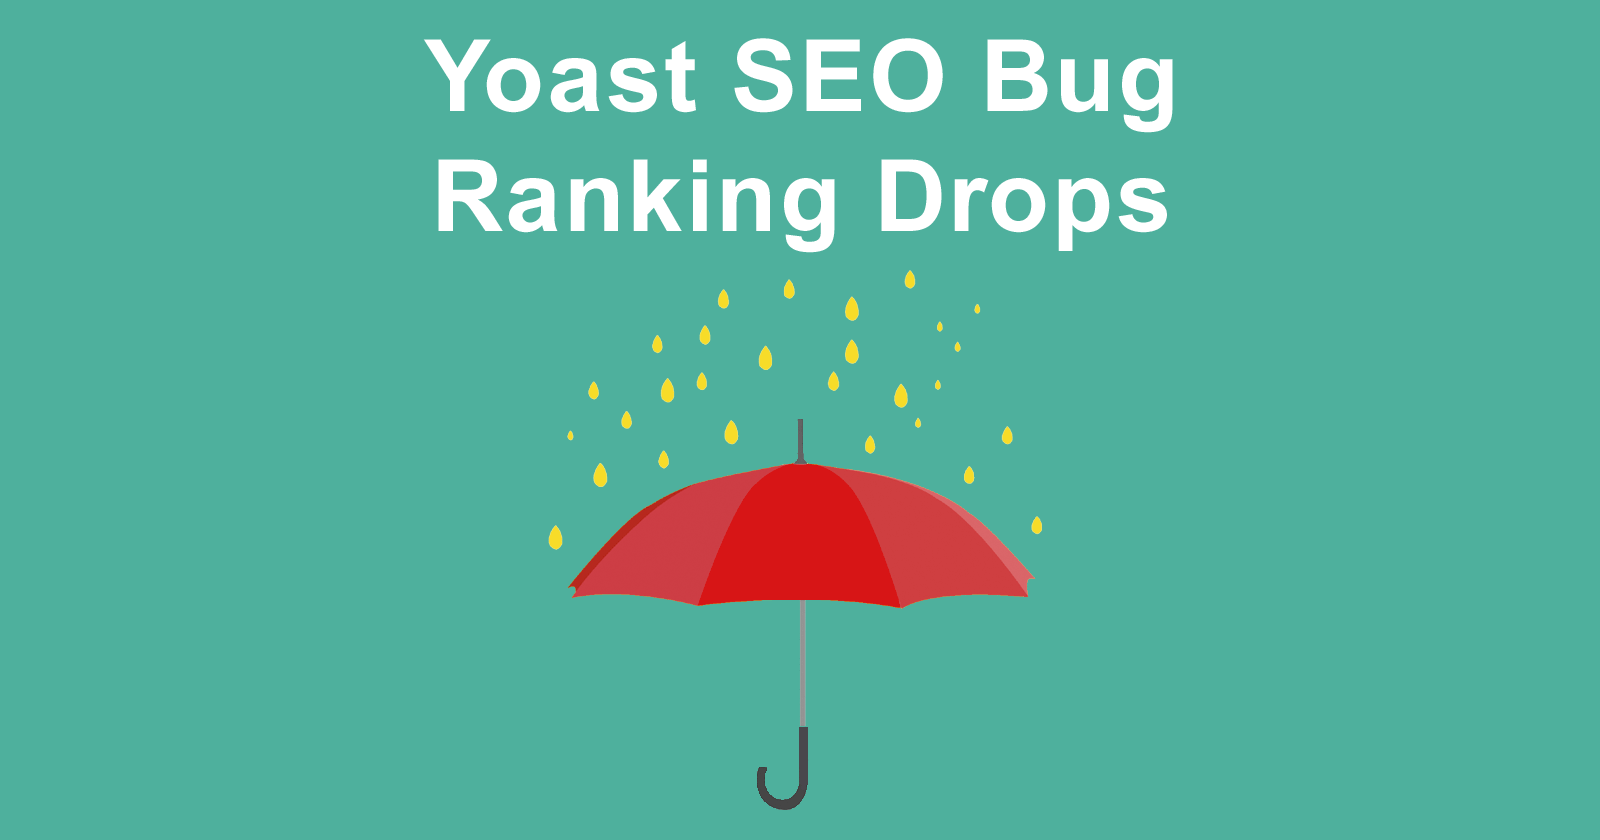 Yoast SEO Plugin 7.0 Bug Causes Ranking Drops by @martinibuster